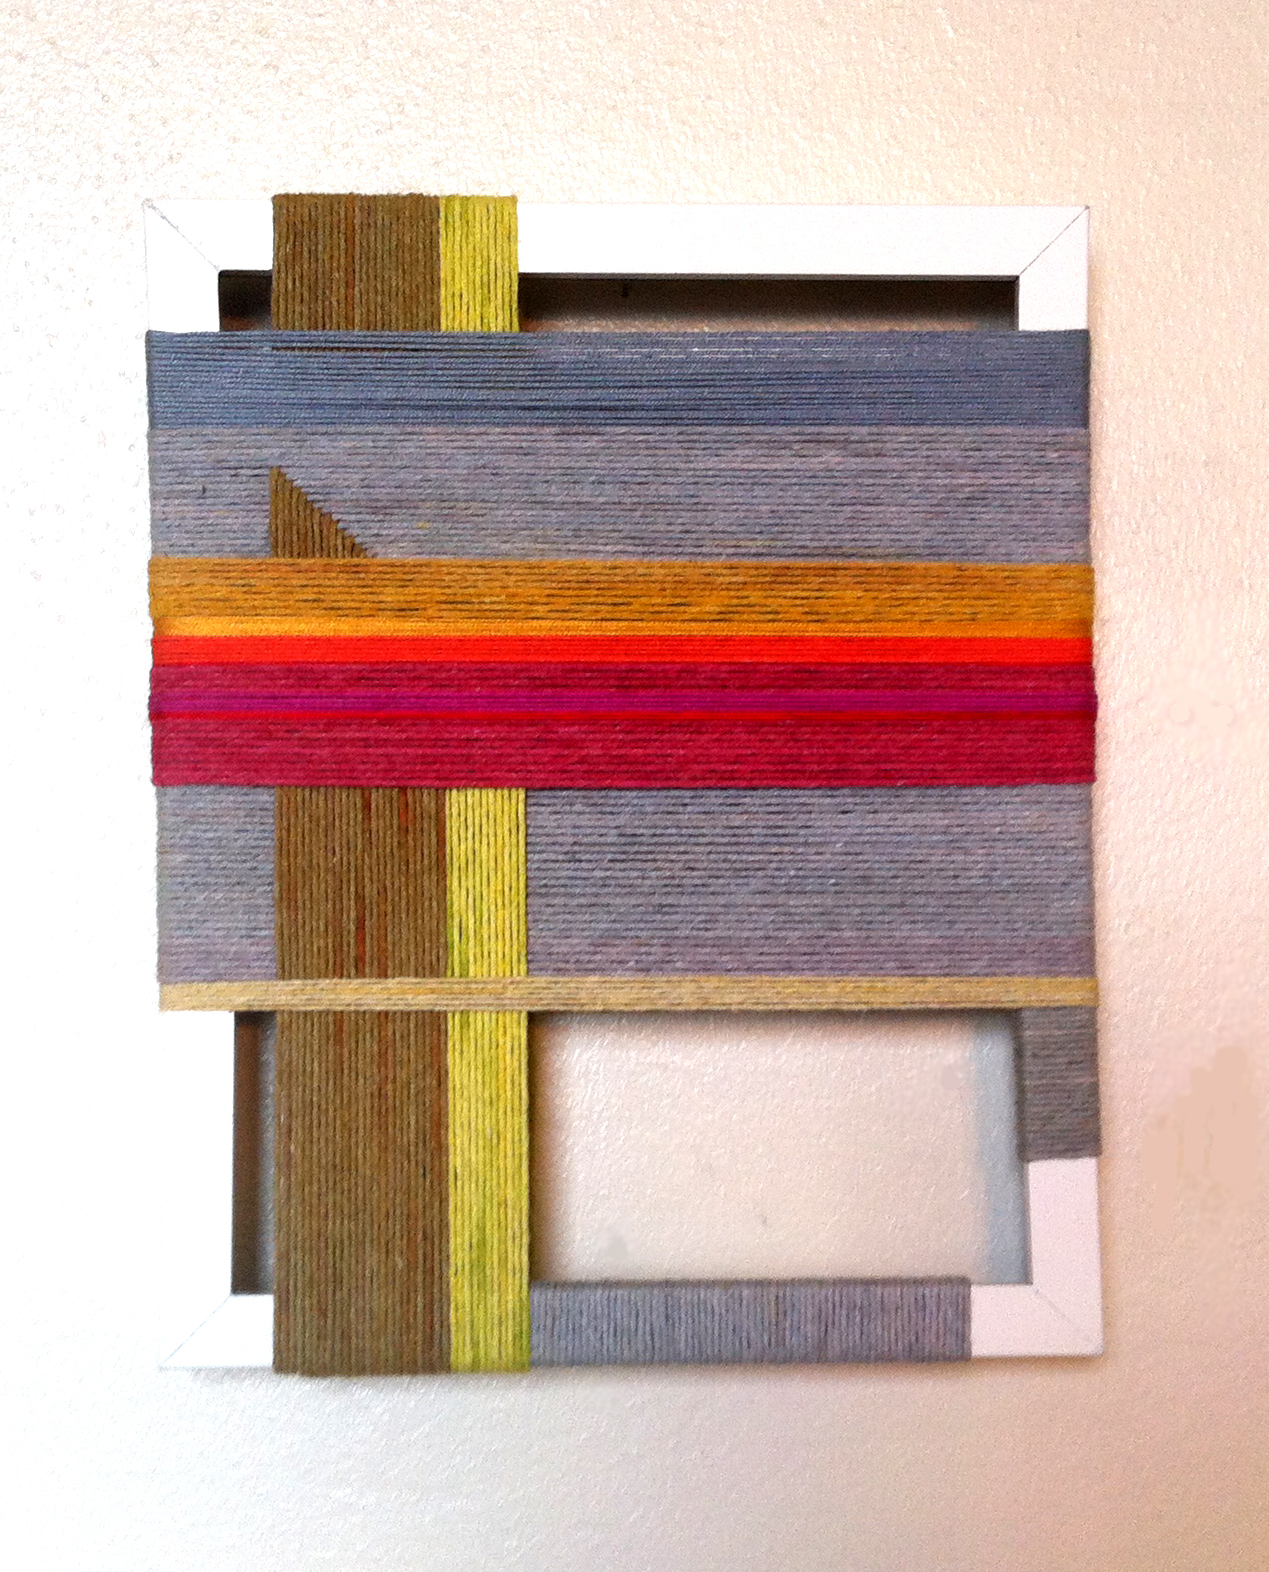 laurenbahr: Number 8.  Lauren Bahr, 9 x 11 inches, 2012, hand dyed rope around a reclaimed frame.